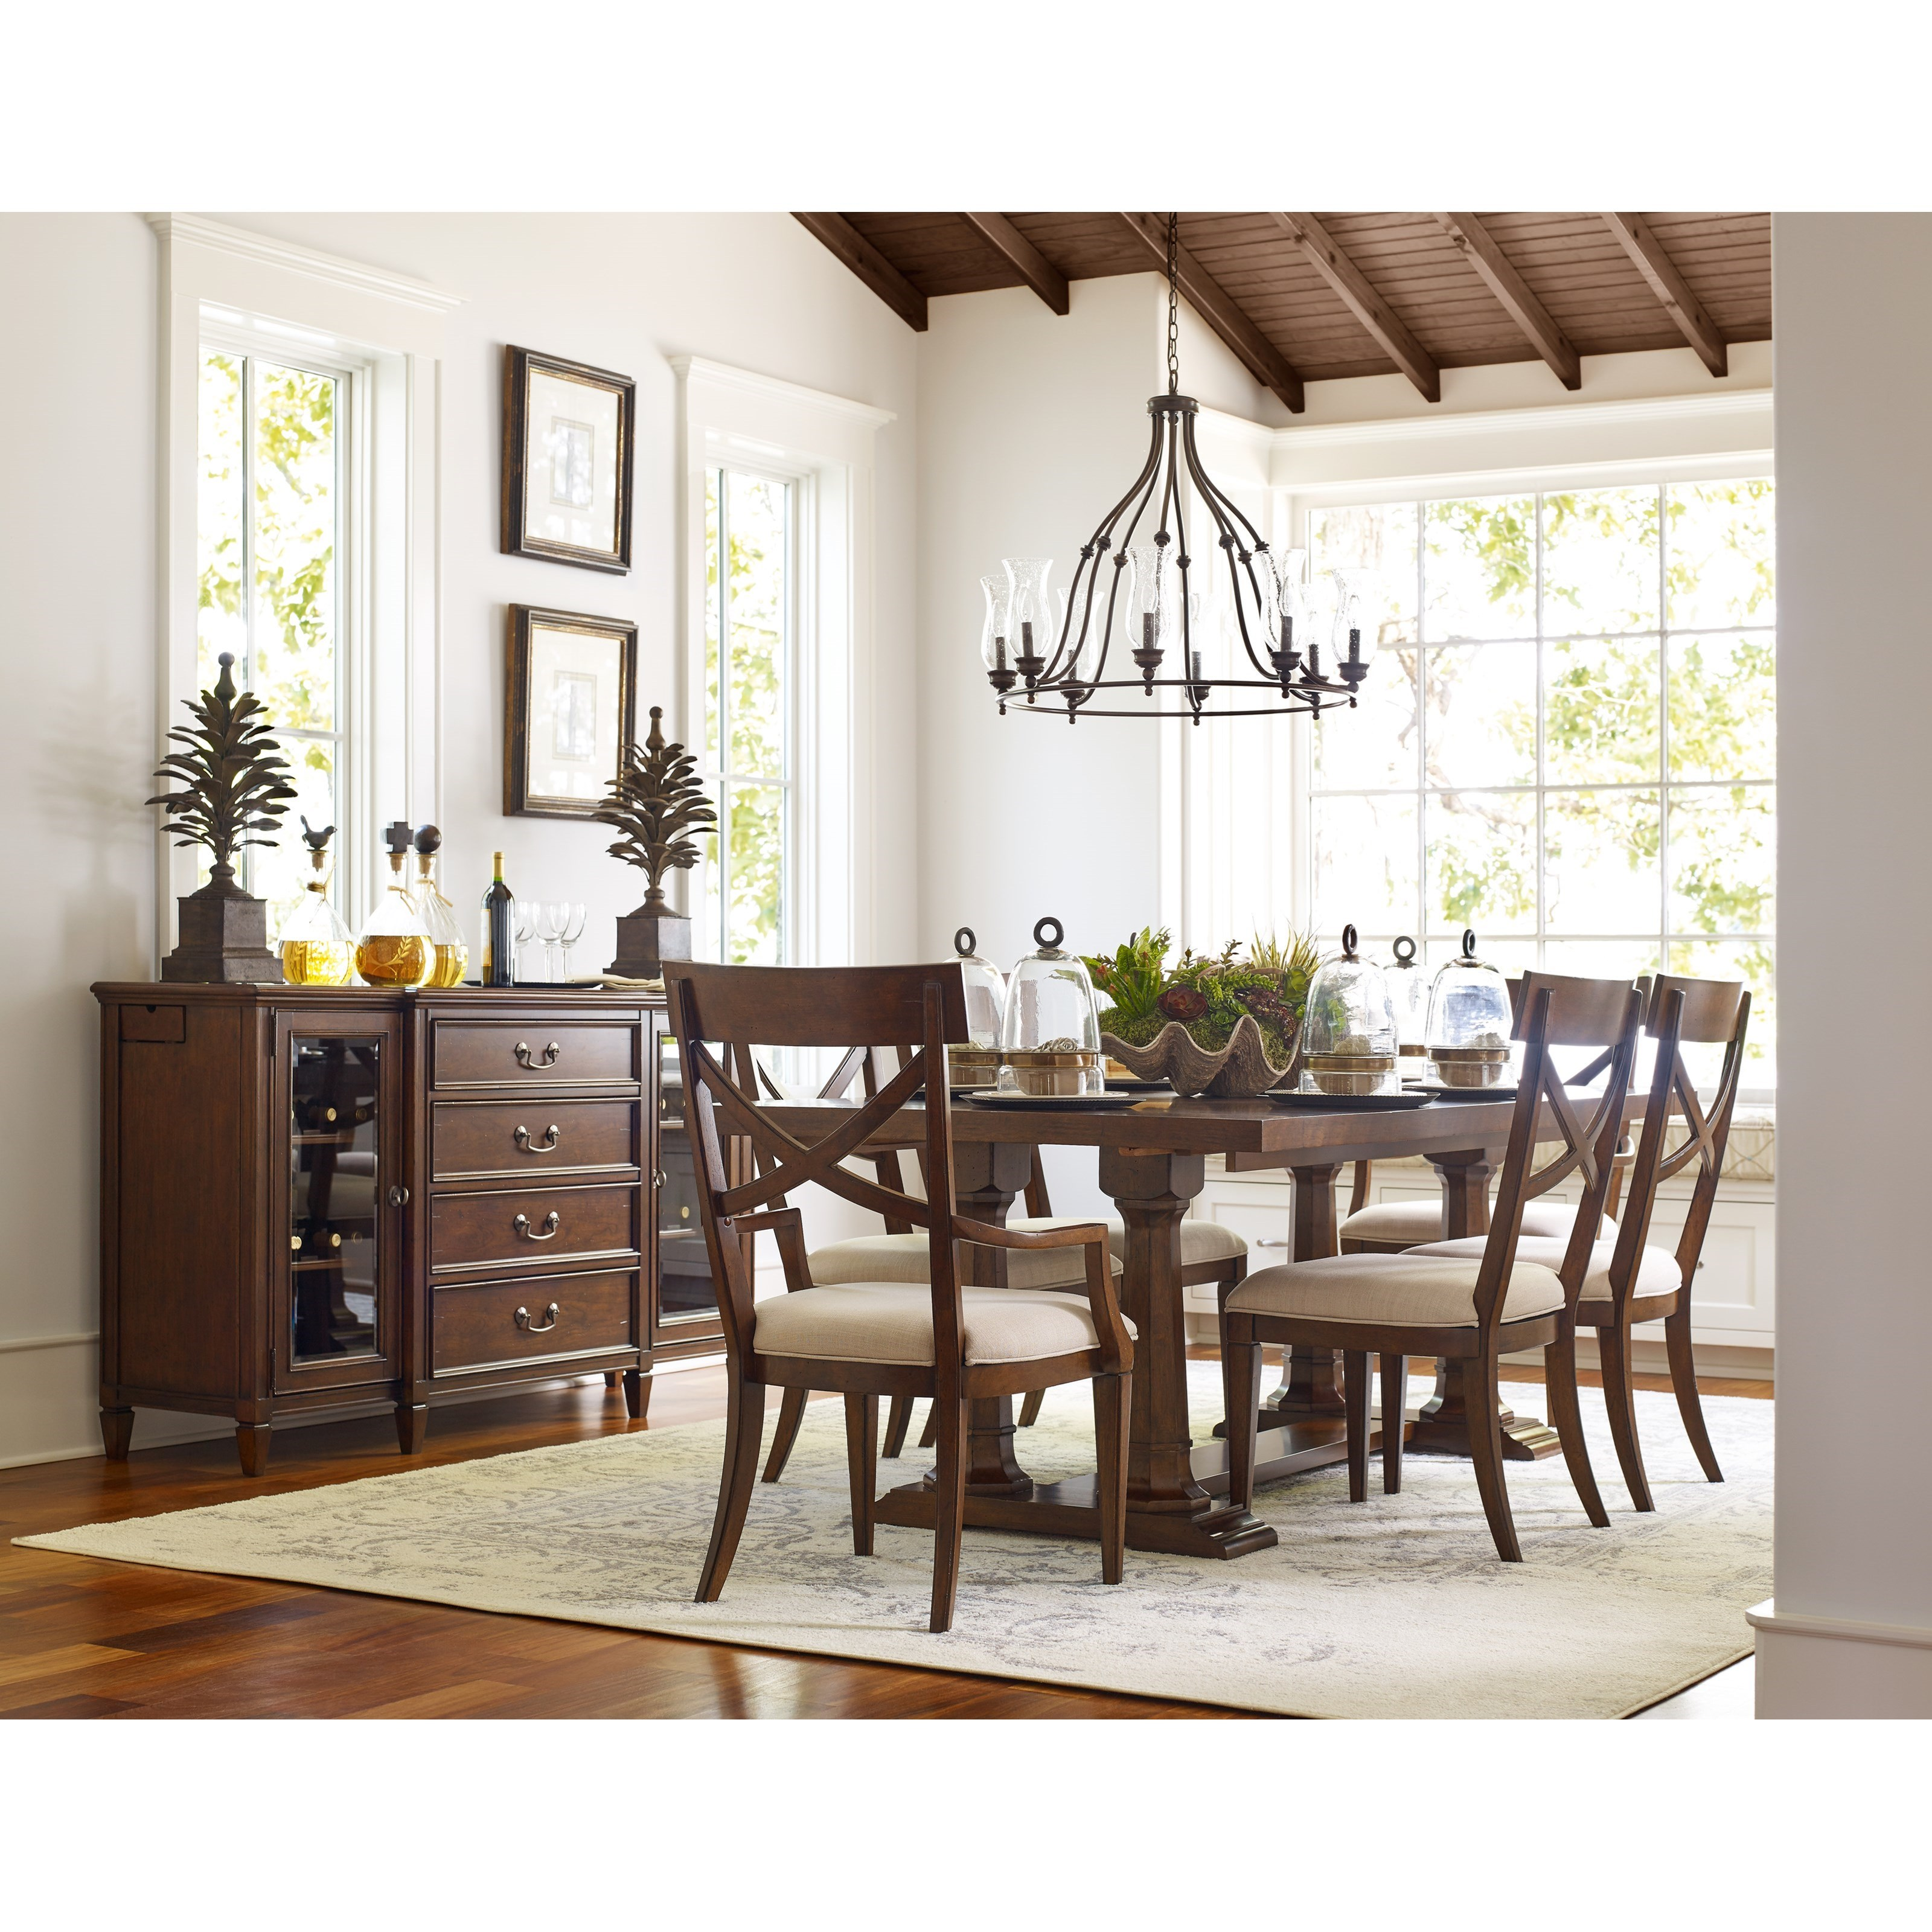 Rachael ray home by legacy classic upstate x back arm for Legacy classic dining room furniture